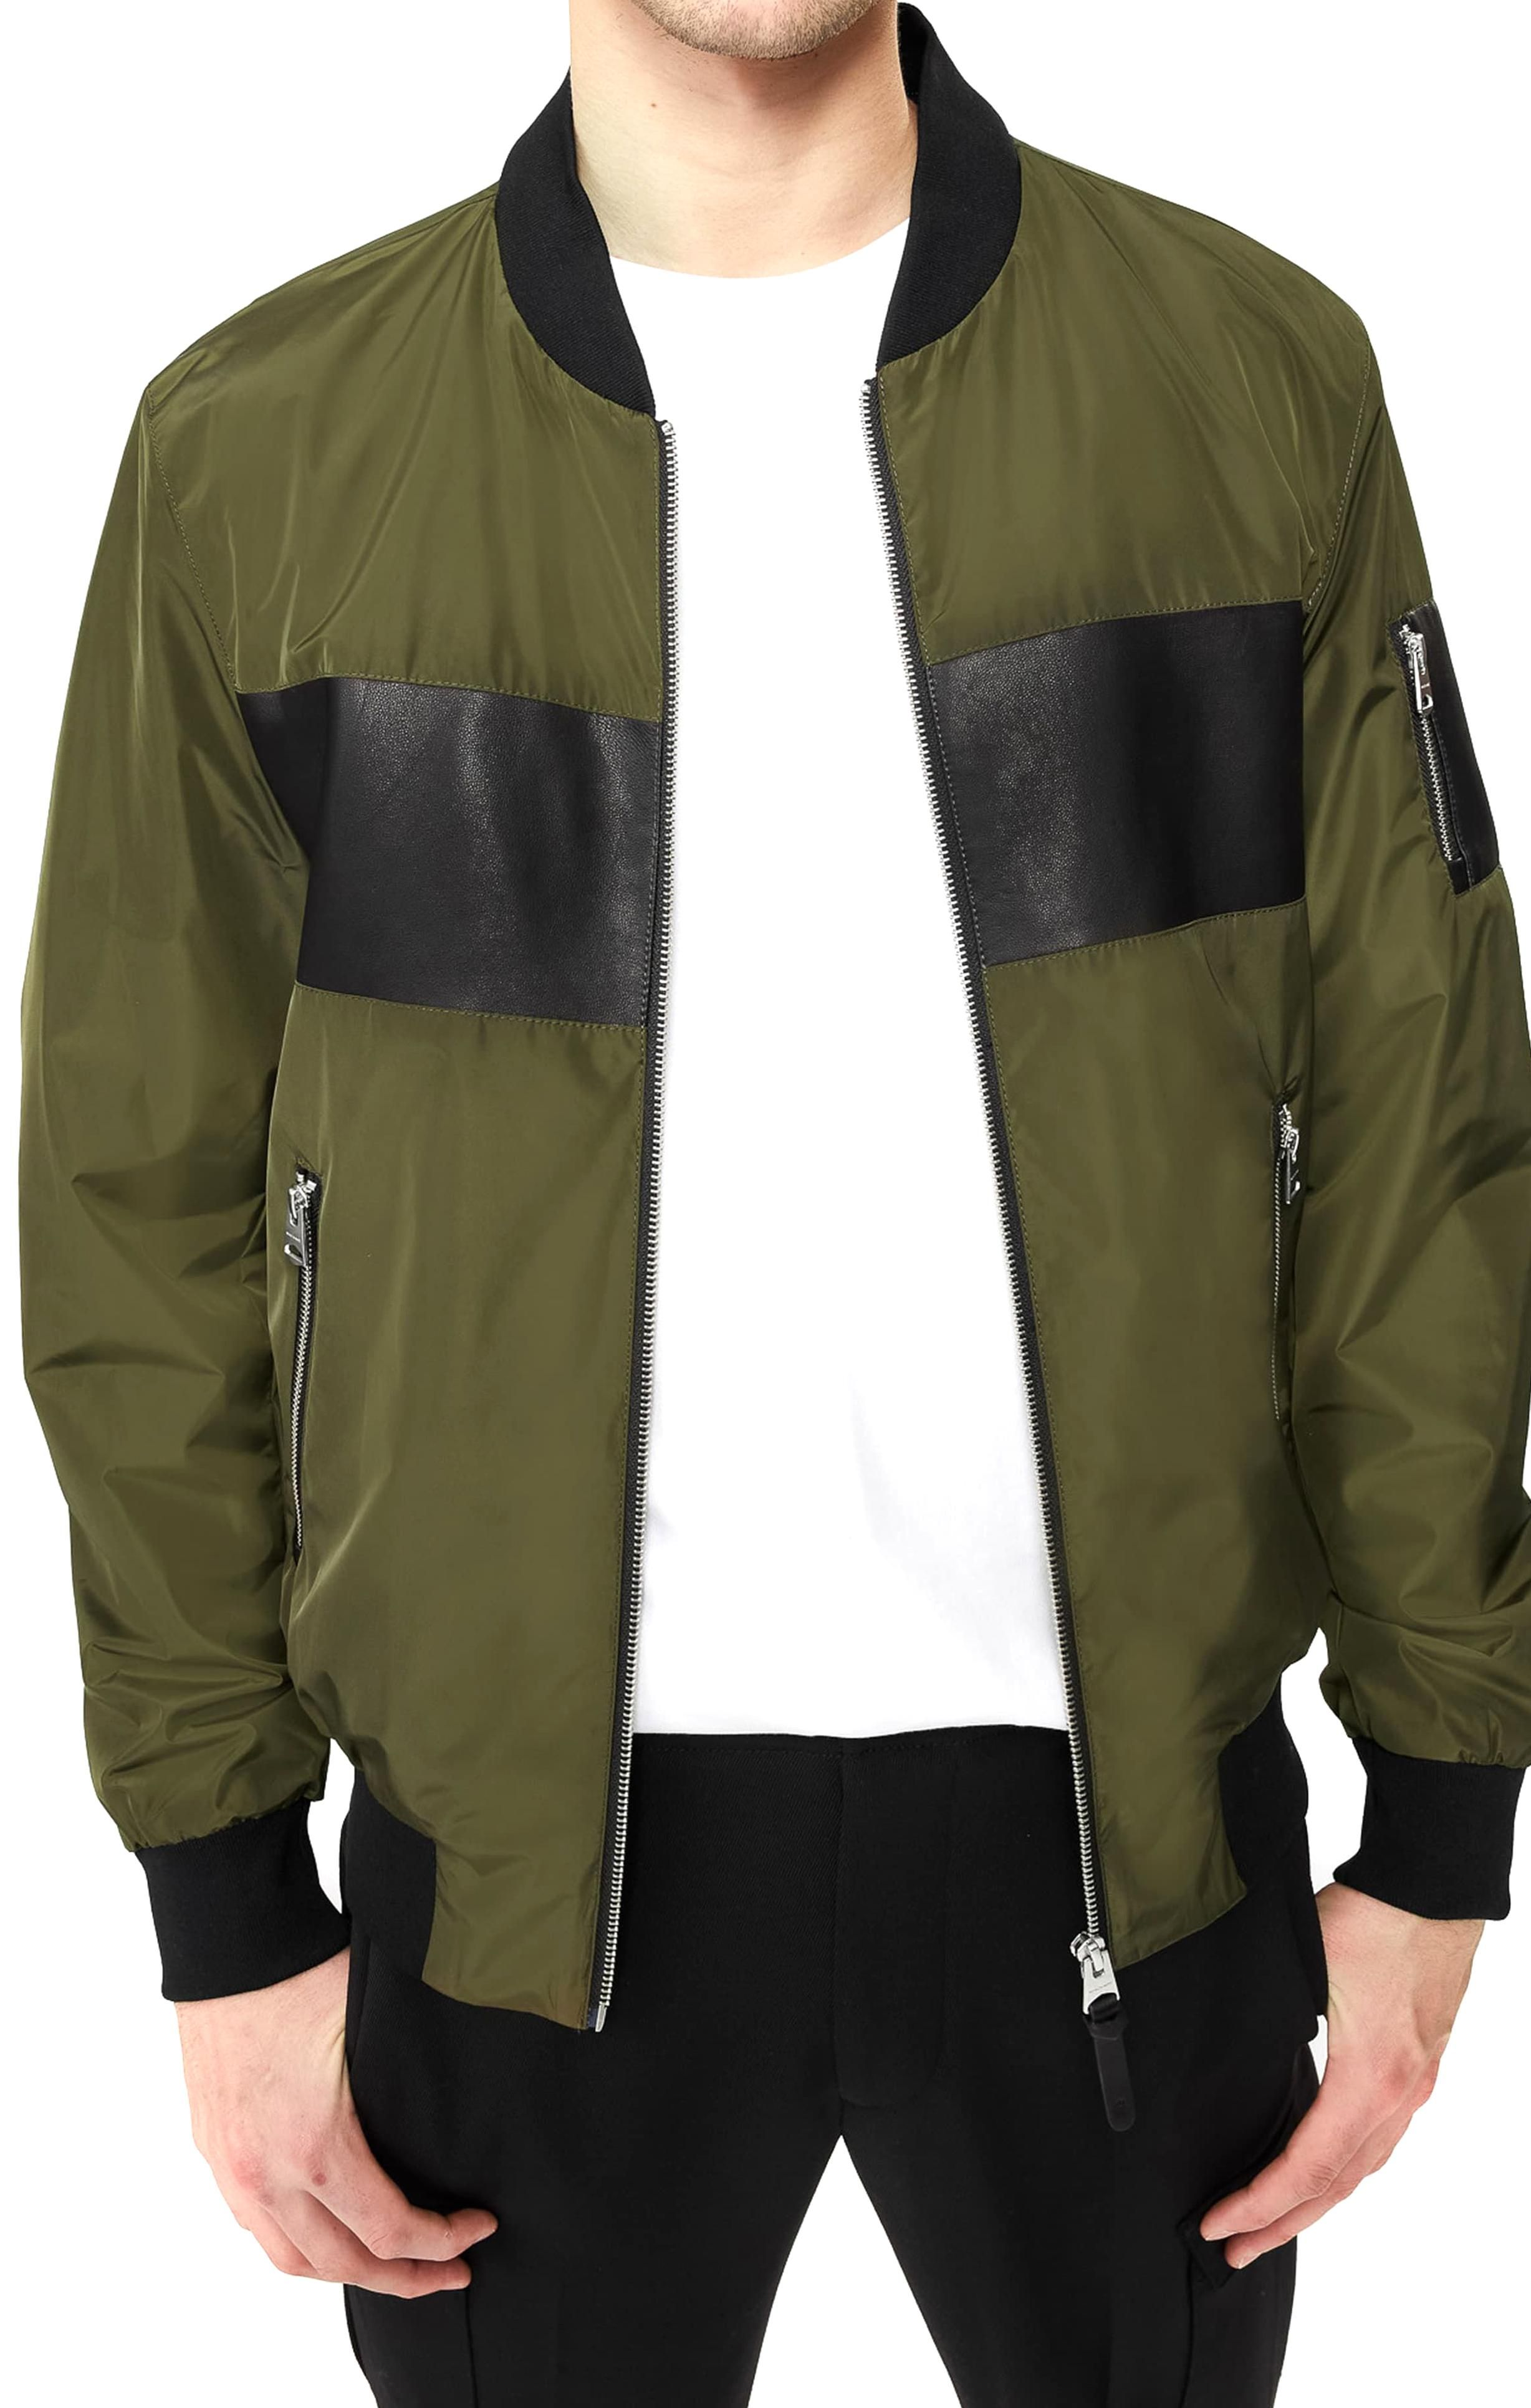 Sleek Style Is The Name Of The Game In This Hooded Bomber Trimmed With A Wide Leather Stripe Style Nam In 2020 Hooded Bomber Jacket Bomber Jacket Fashion Bomber Jacket [ 3864 x 2456 Pixel ]